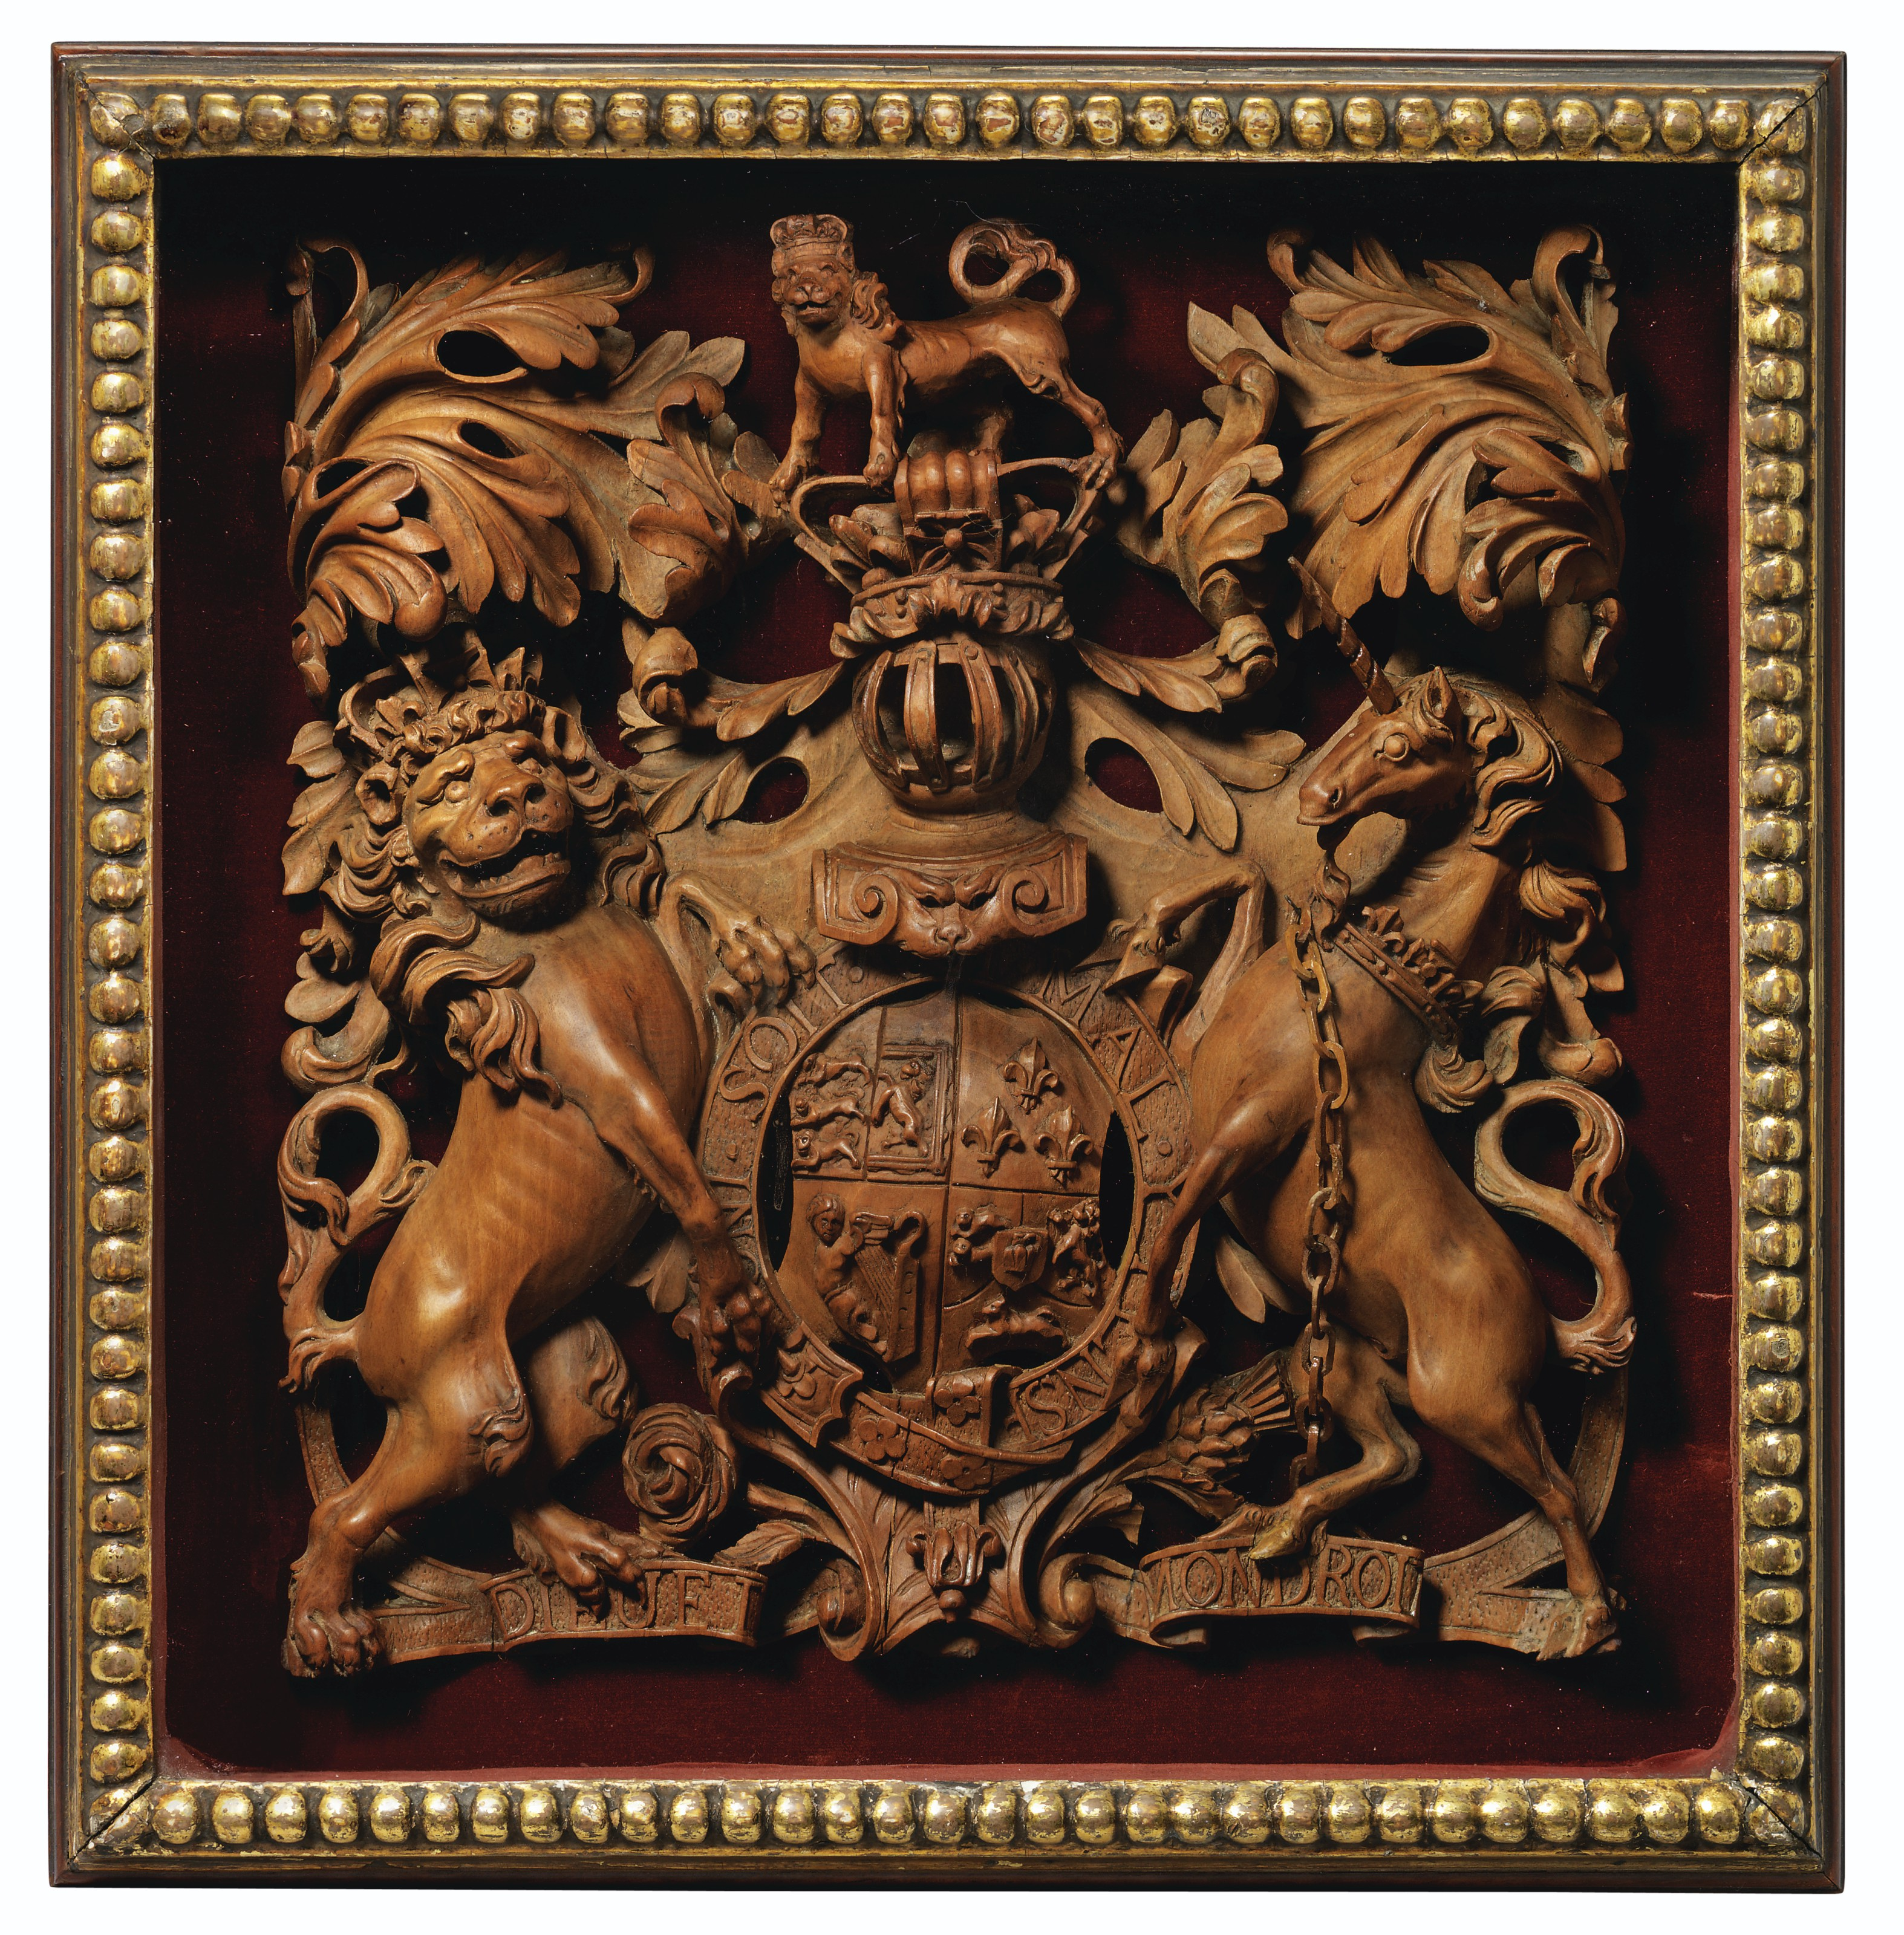 Property from descendants of Their Majesties King George V and Queen Mary